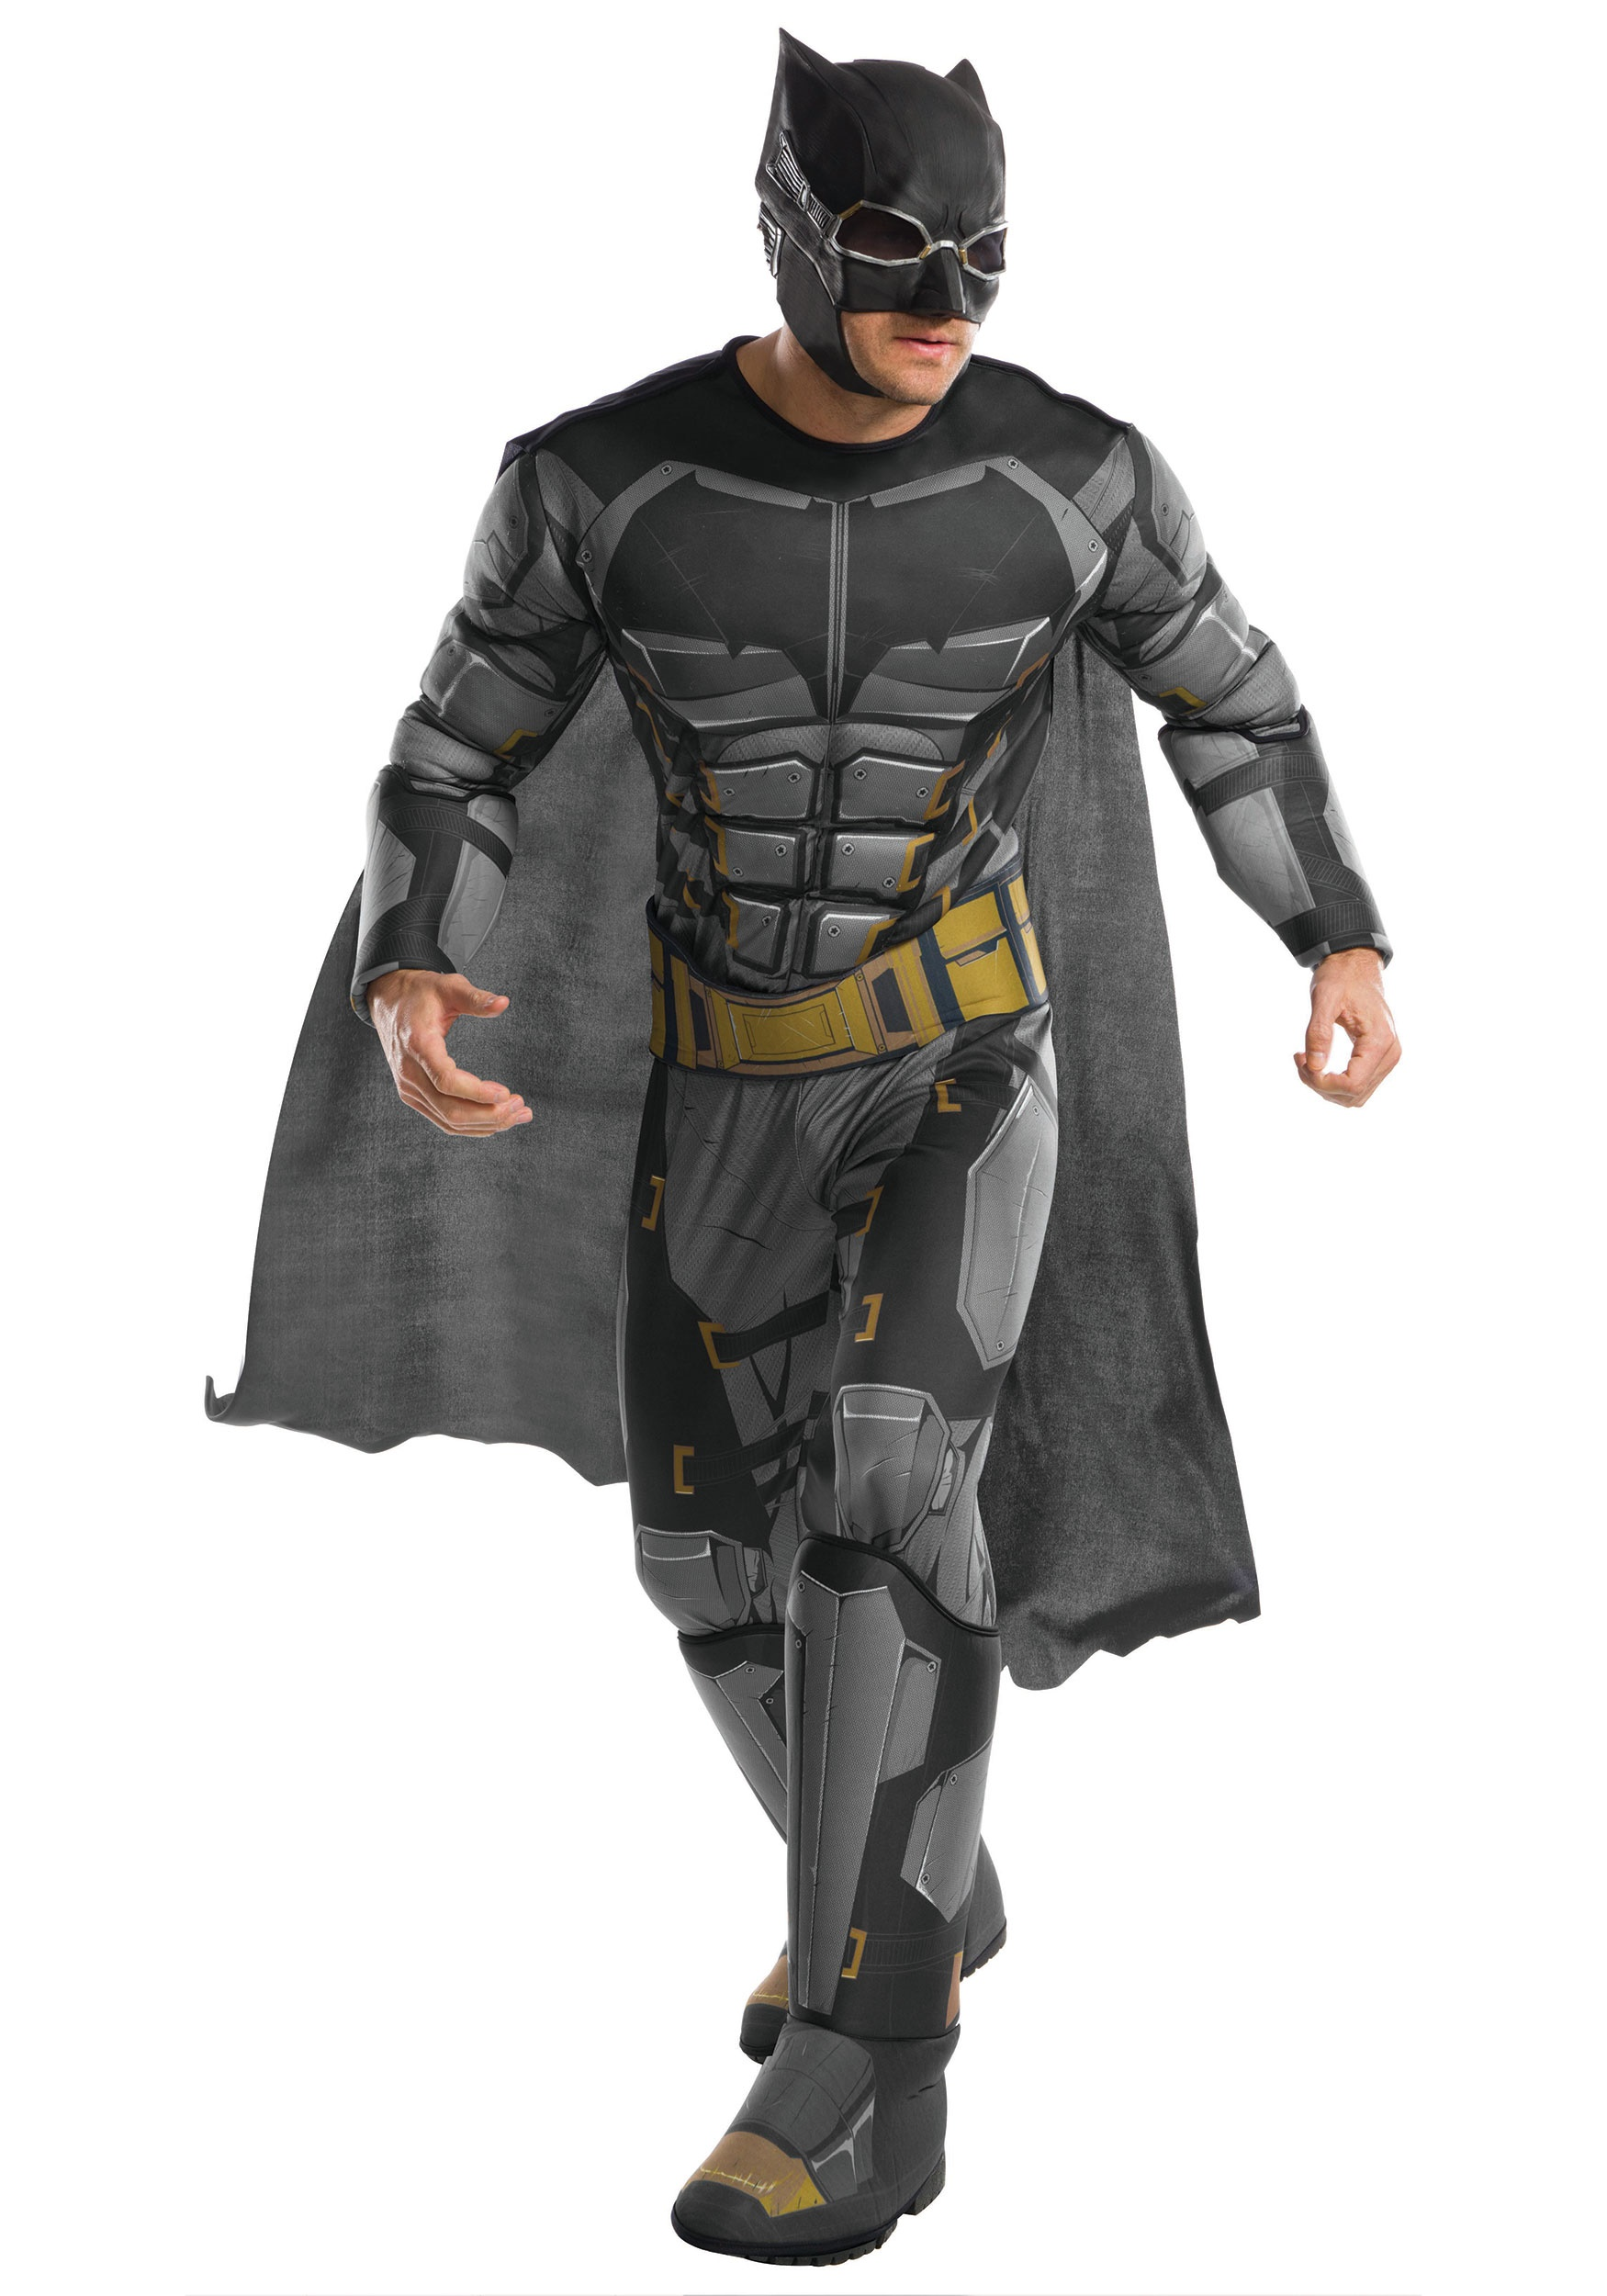 Justice Leauge Adult Deluxe Tactical Batman Costume  sc 1 st  Halloween Costumes & Justice League Adult Deluxe Tactical Batman Costume